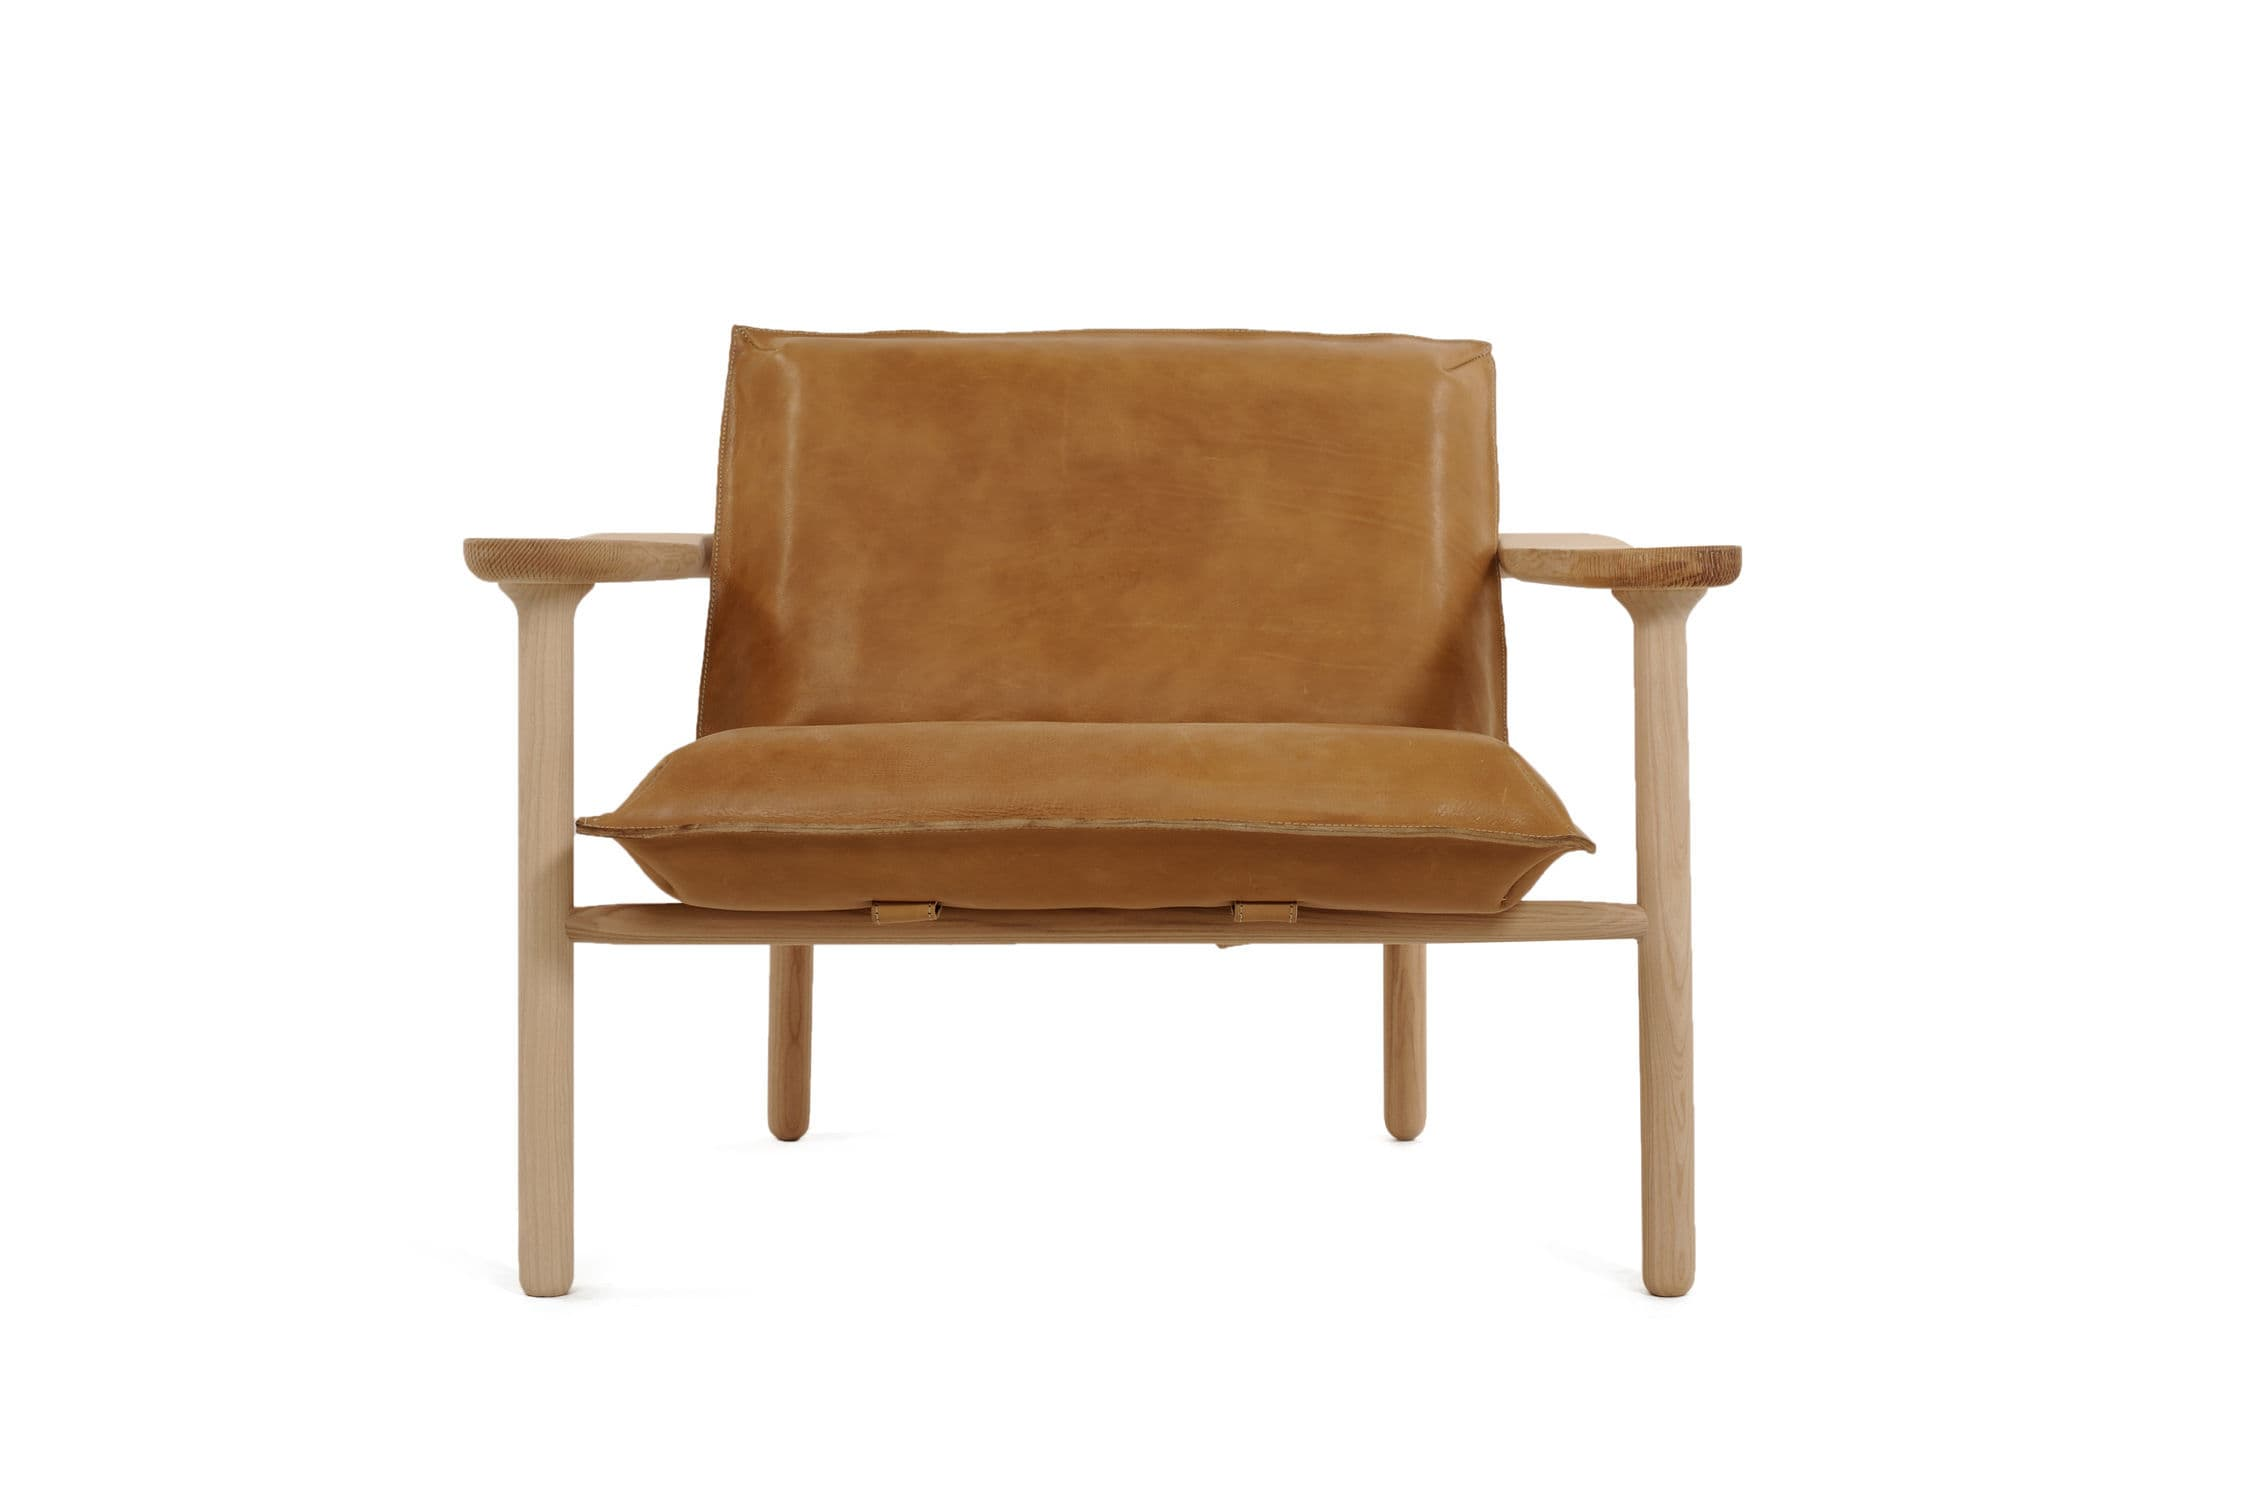 ... Scandinavian design armchair / solid wood / leather IGMAN by Harri  Koskinen Zanat ...